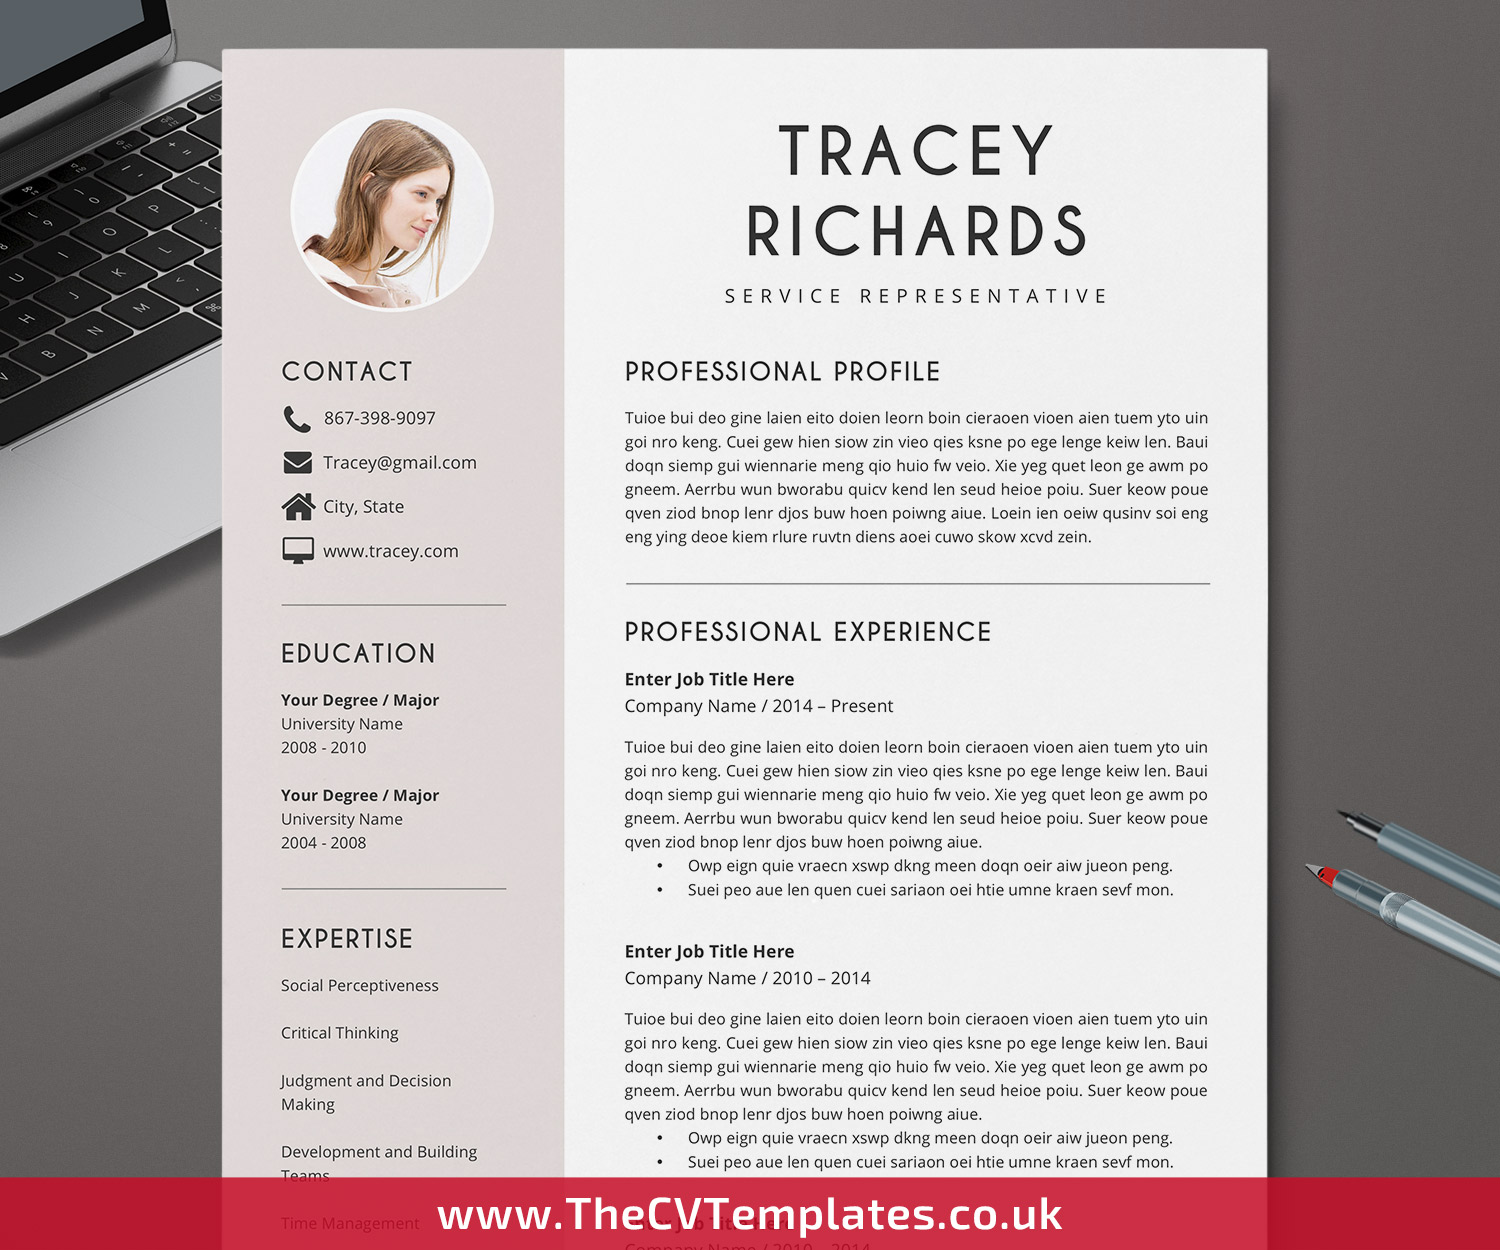 Cv text resume psychology thesis on relationships